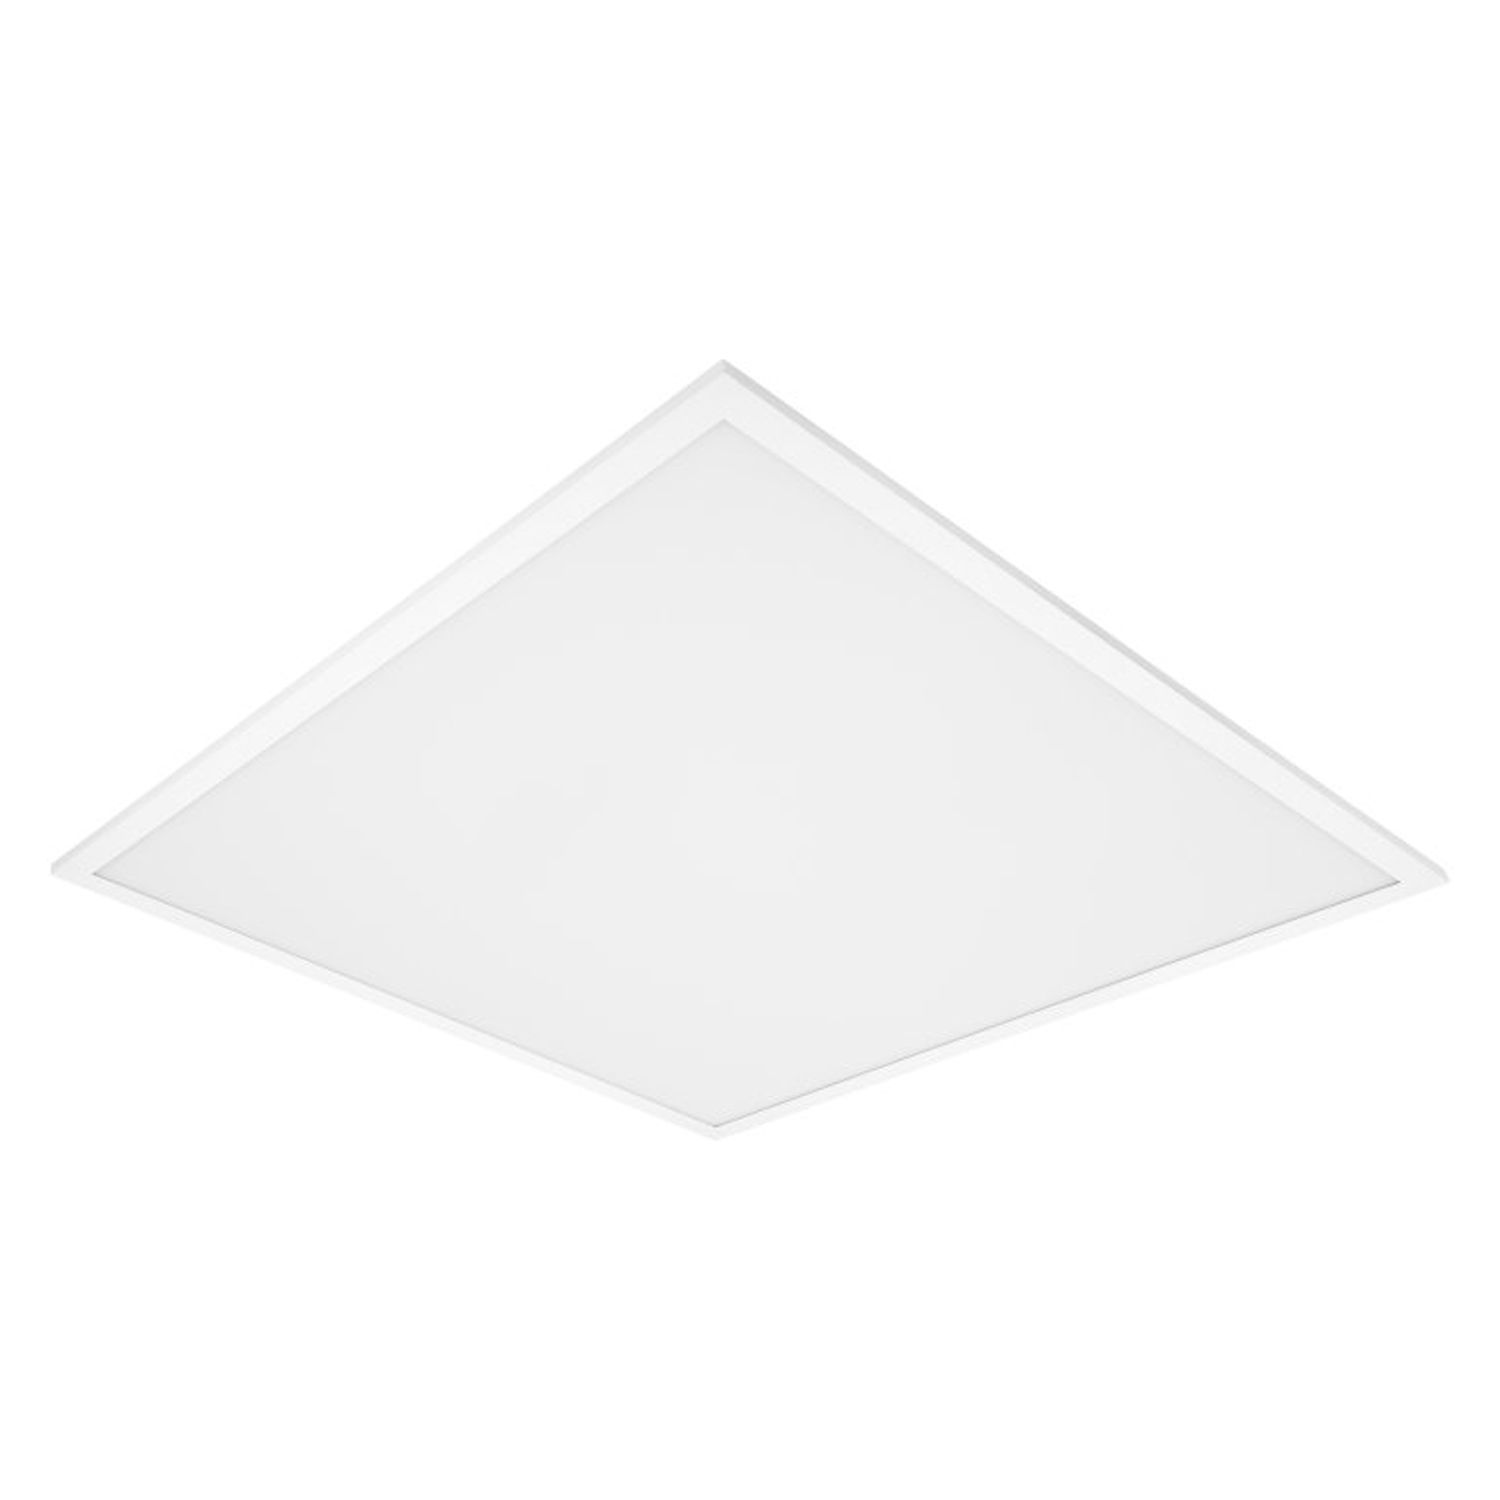 Ledvance LED Panel Performance 60x60cm 3000K 30W UGR<19 | Dali Dimmable - Cool White